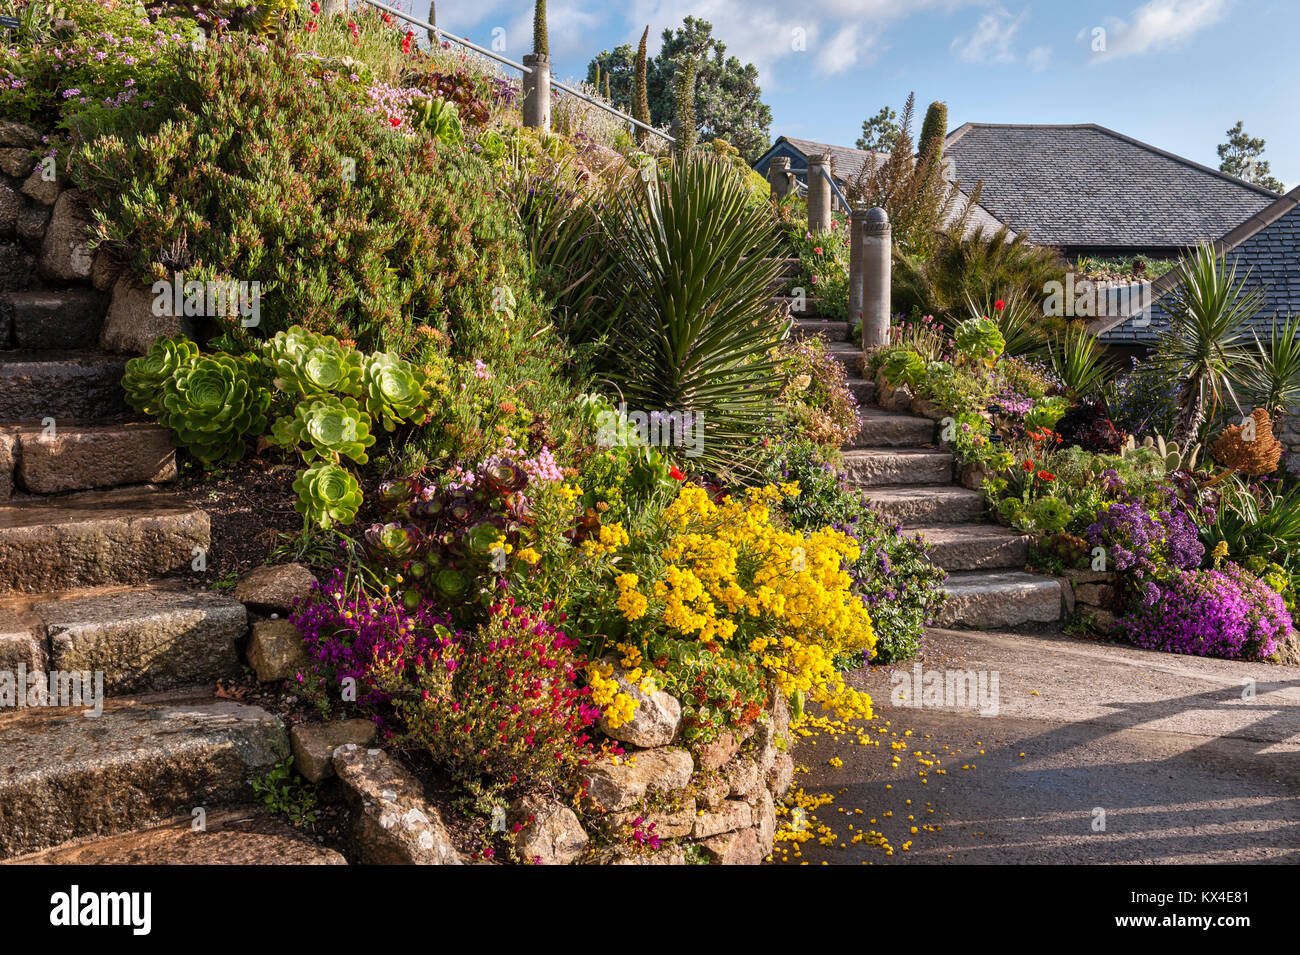 The gardens of the Minack Theatre, Porthcurno, Cornwall, UK. A ...